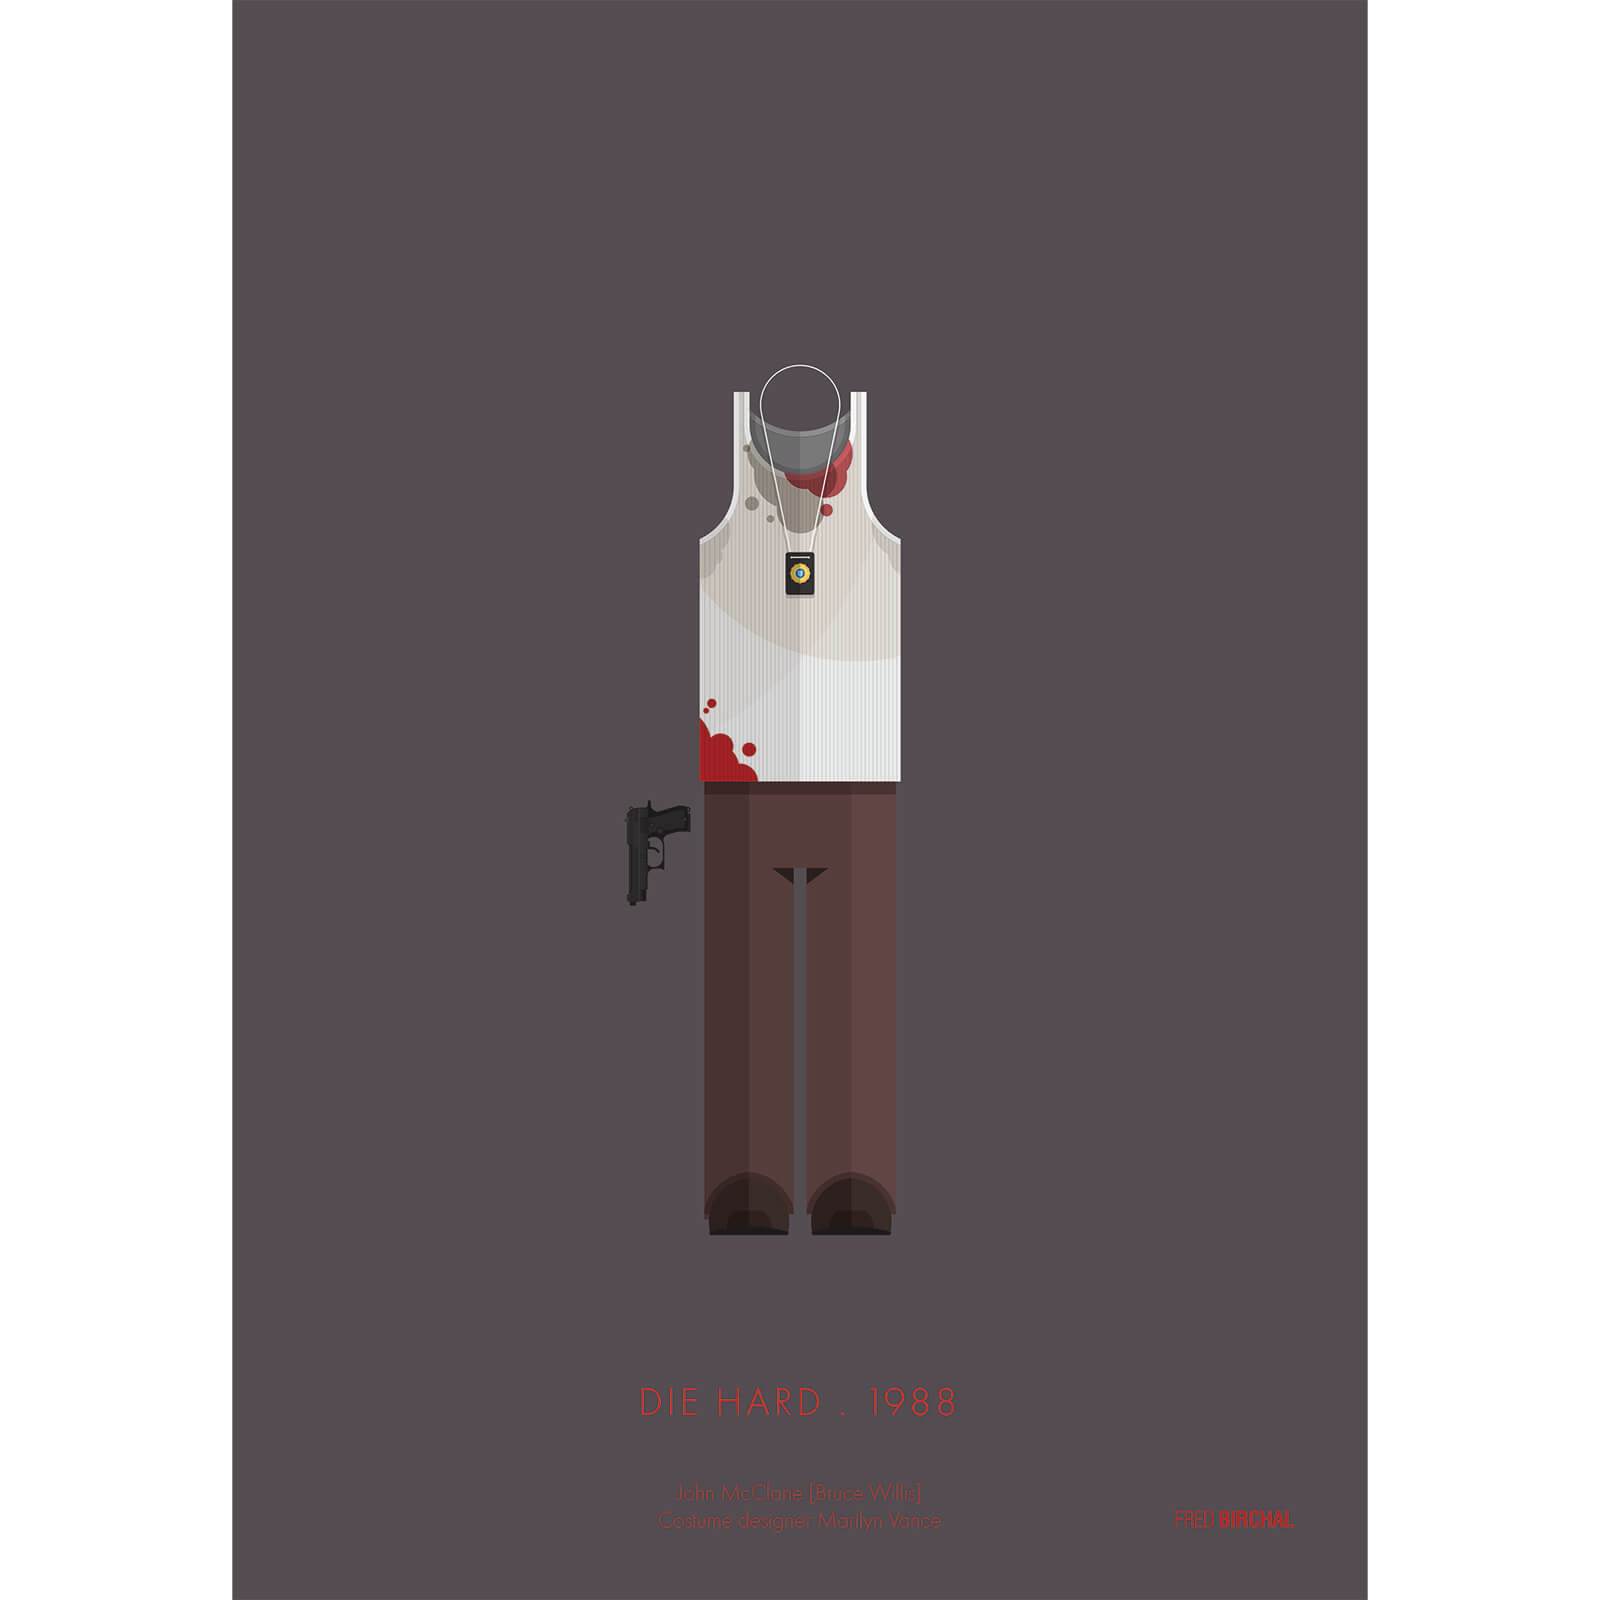 Die Hard Costume Art Print - 14 x 11